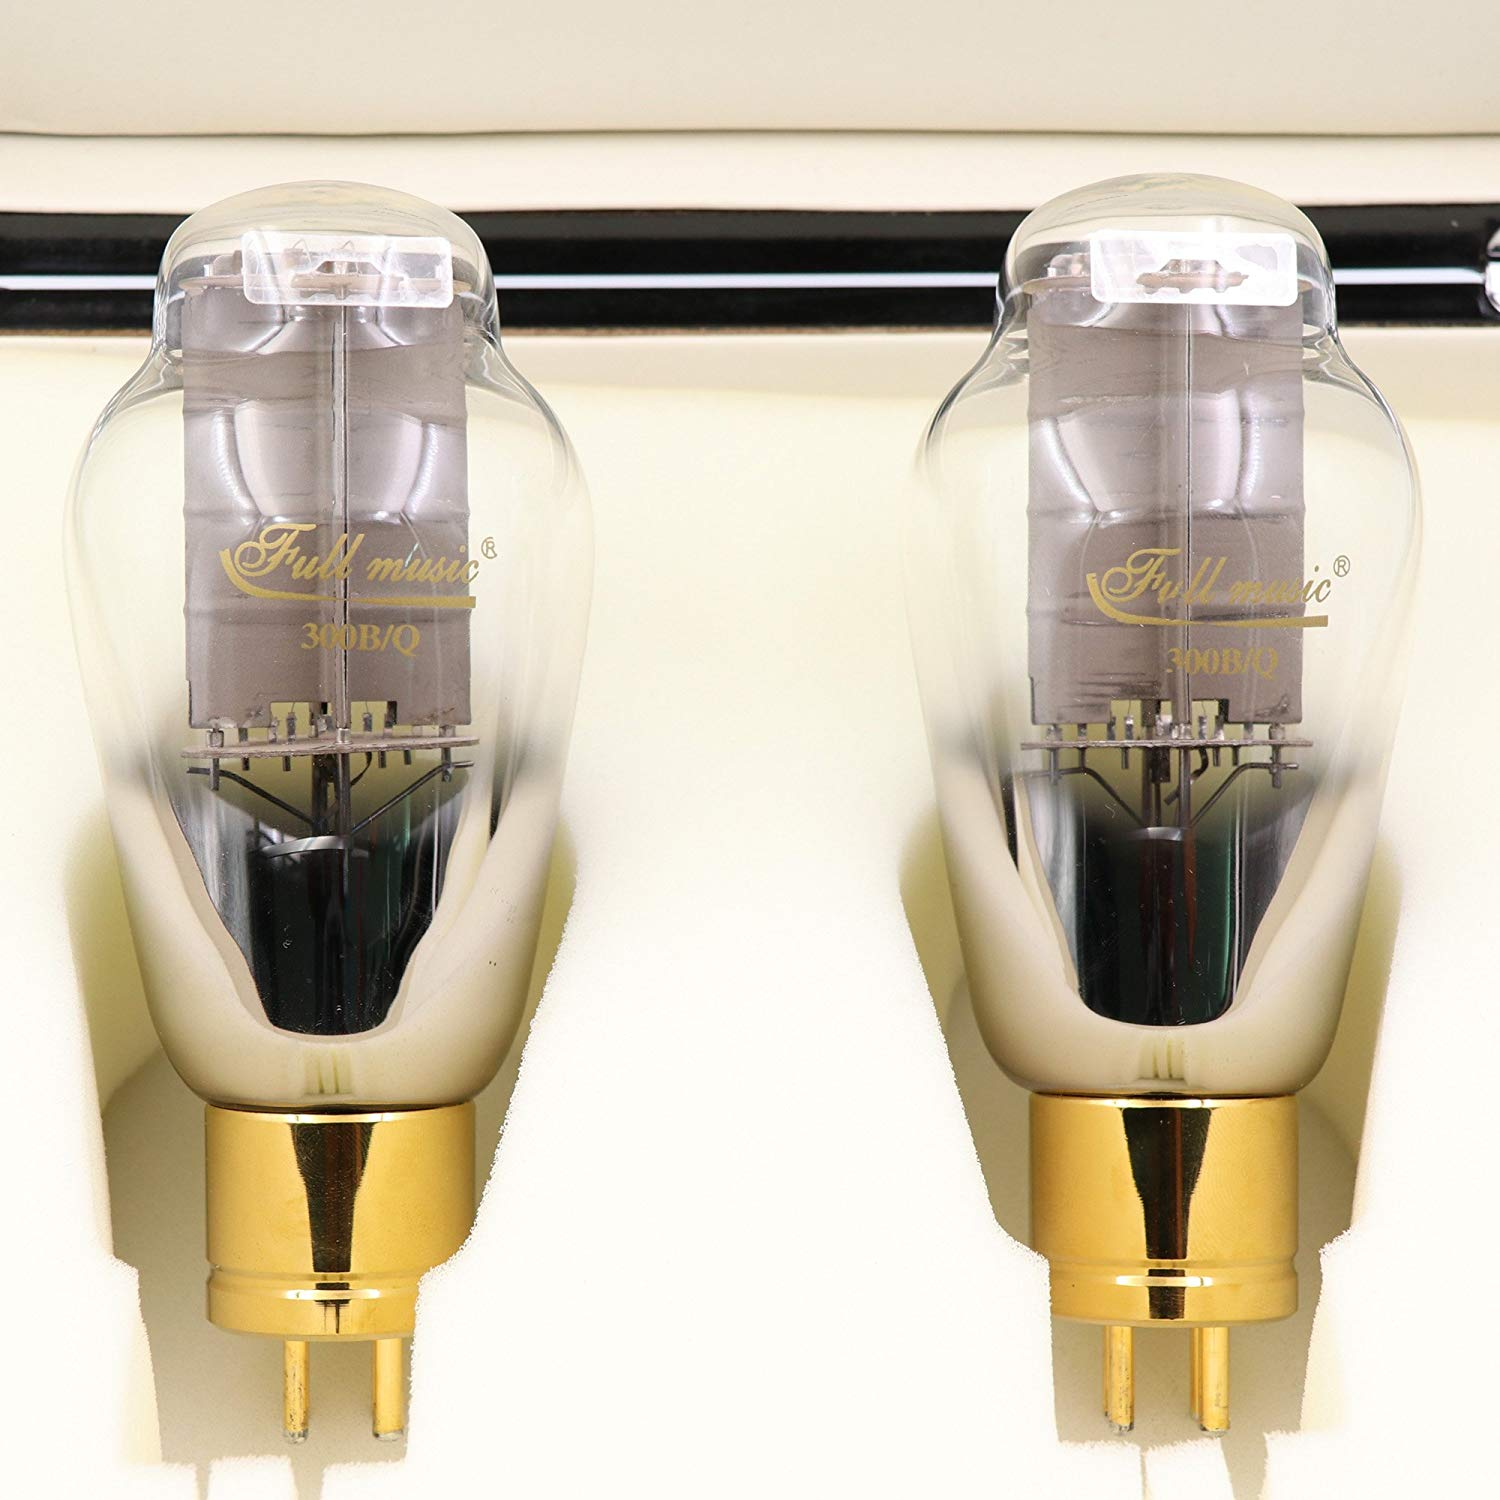 TJ Fullmusic New Matched Pair Premium 300B/Q Vacuum Tube Replace 300B Unique Metal Plate Fantastic Sound